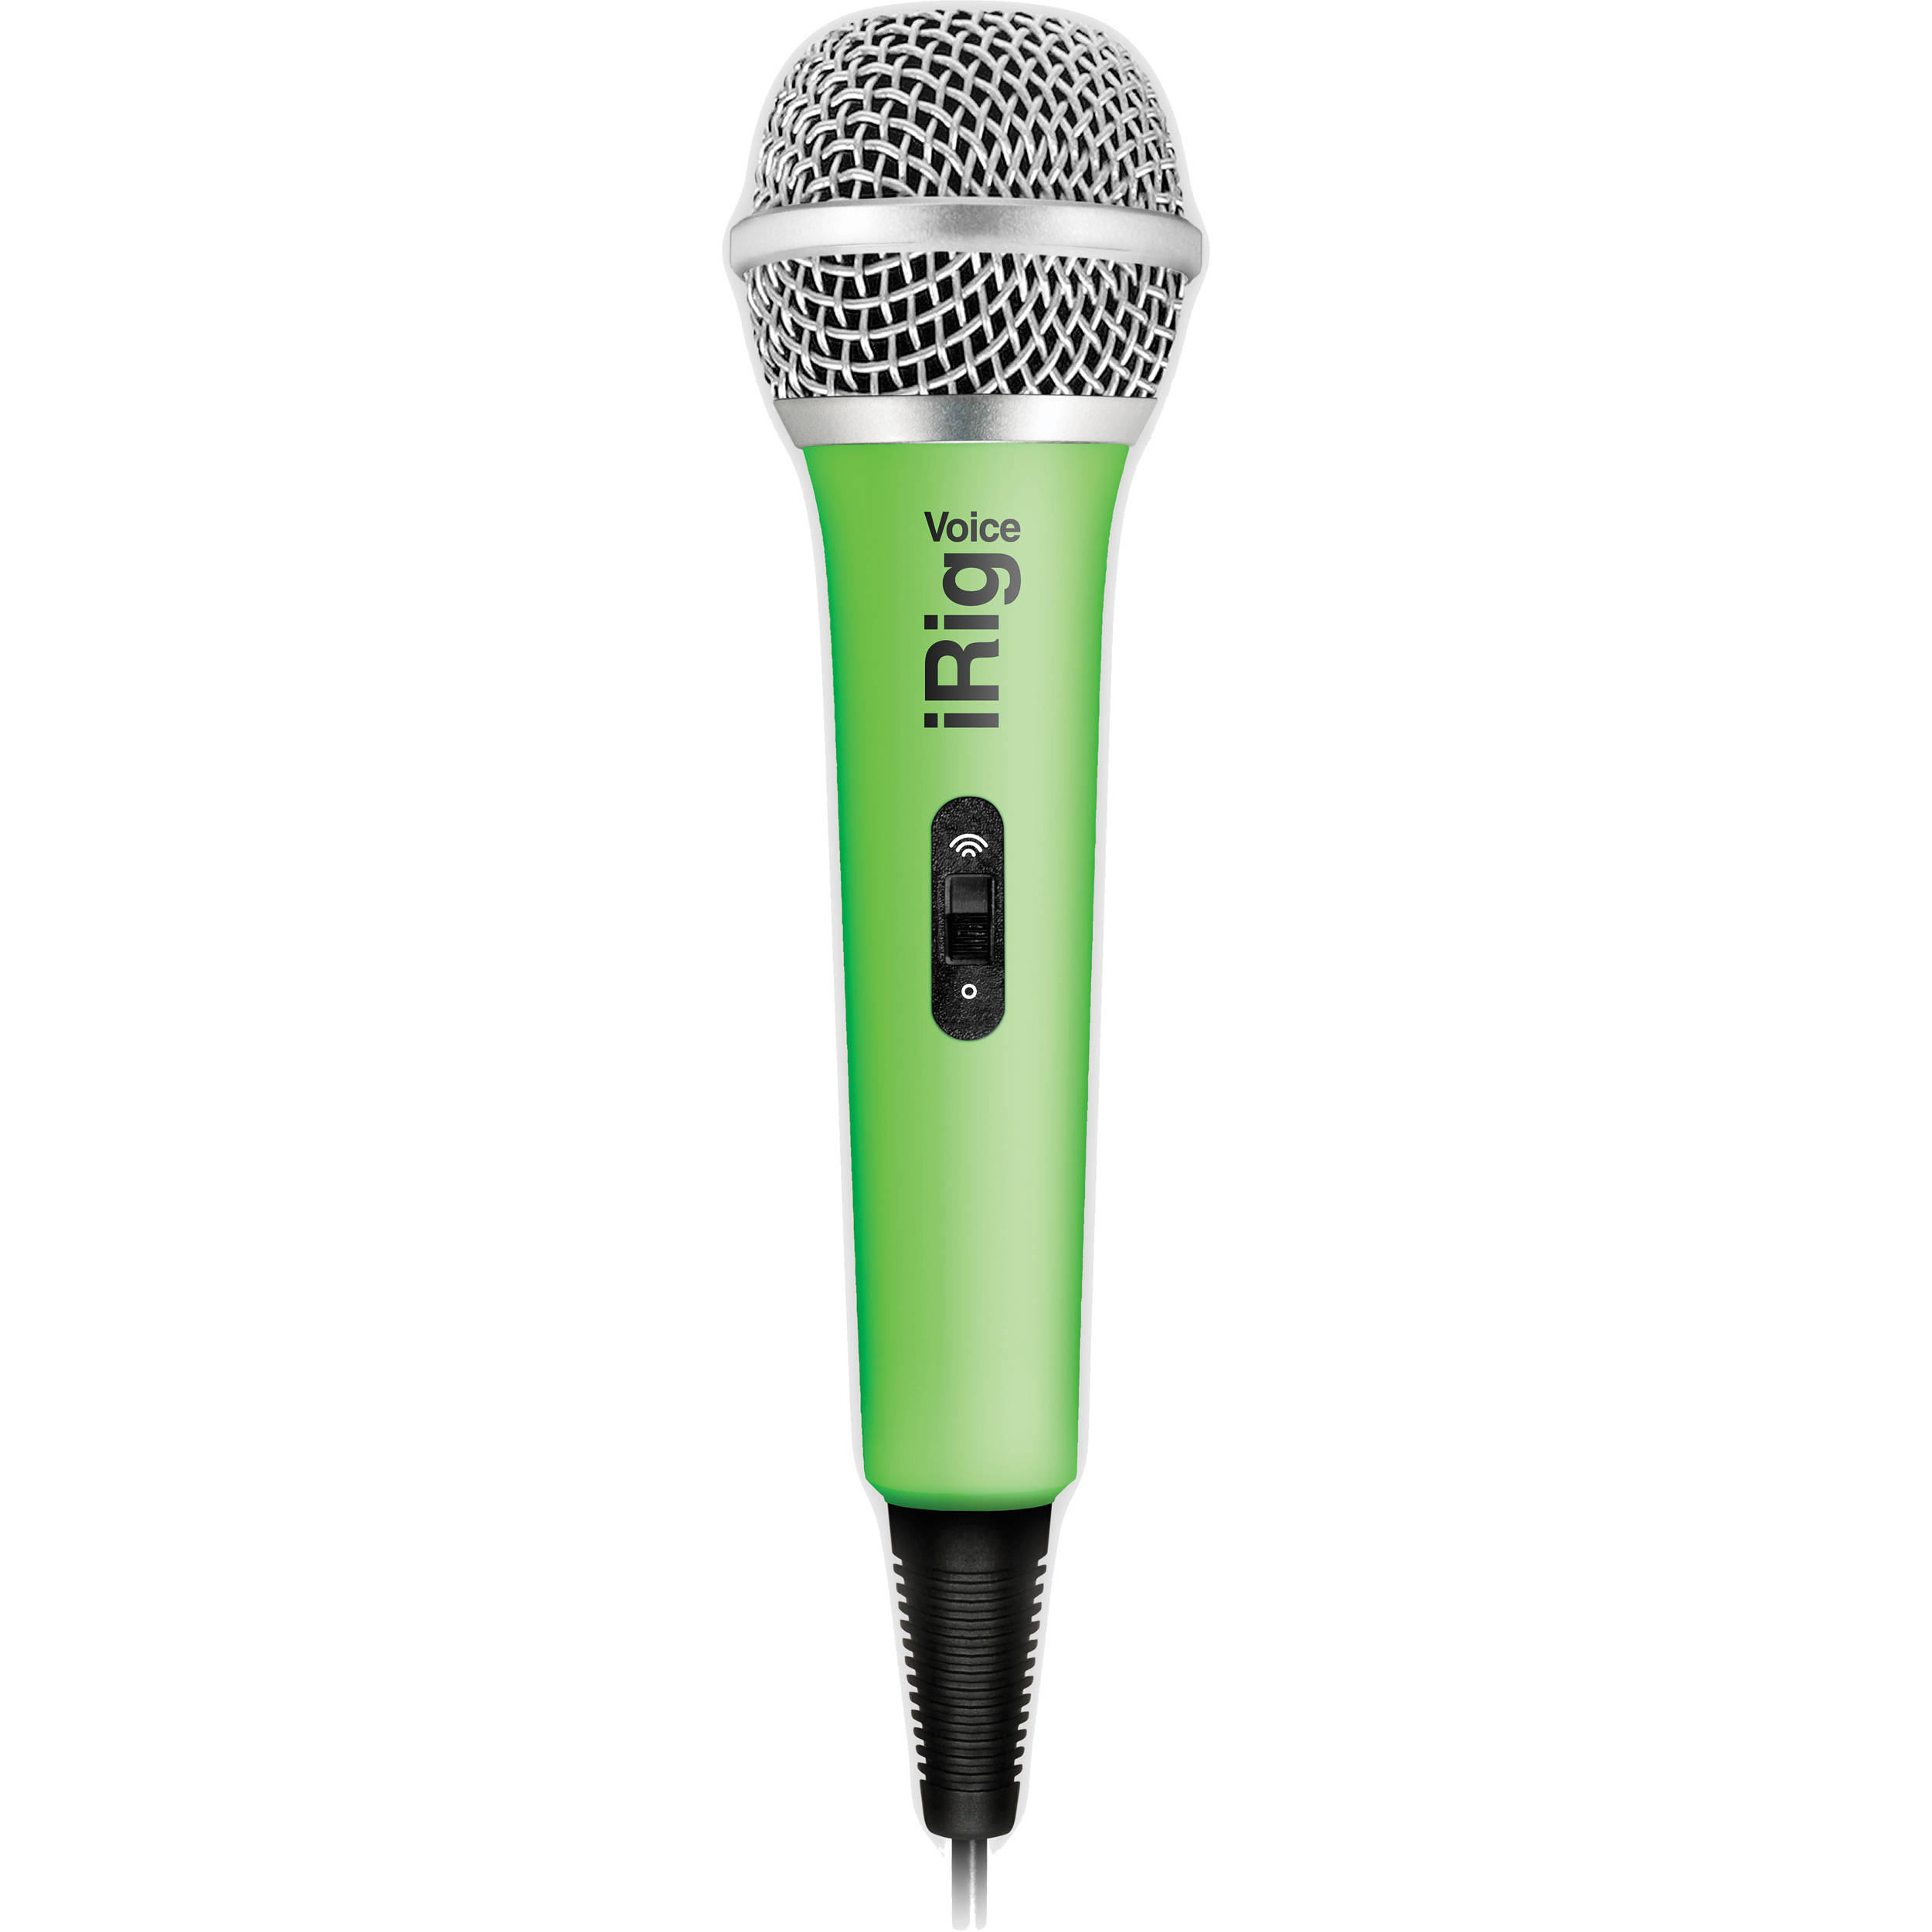 IK Multimedia iRig Voice iOS/Android Handheld Microphone (Green)